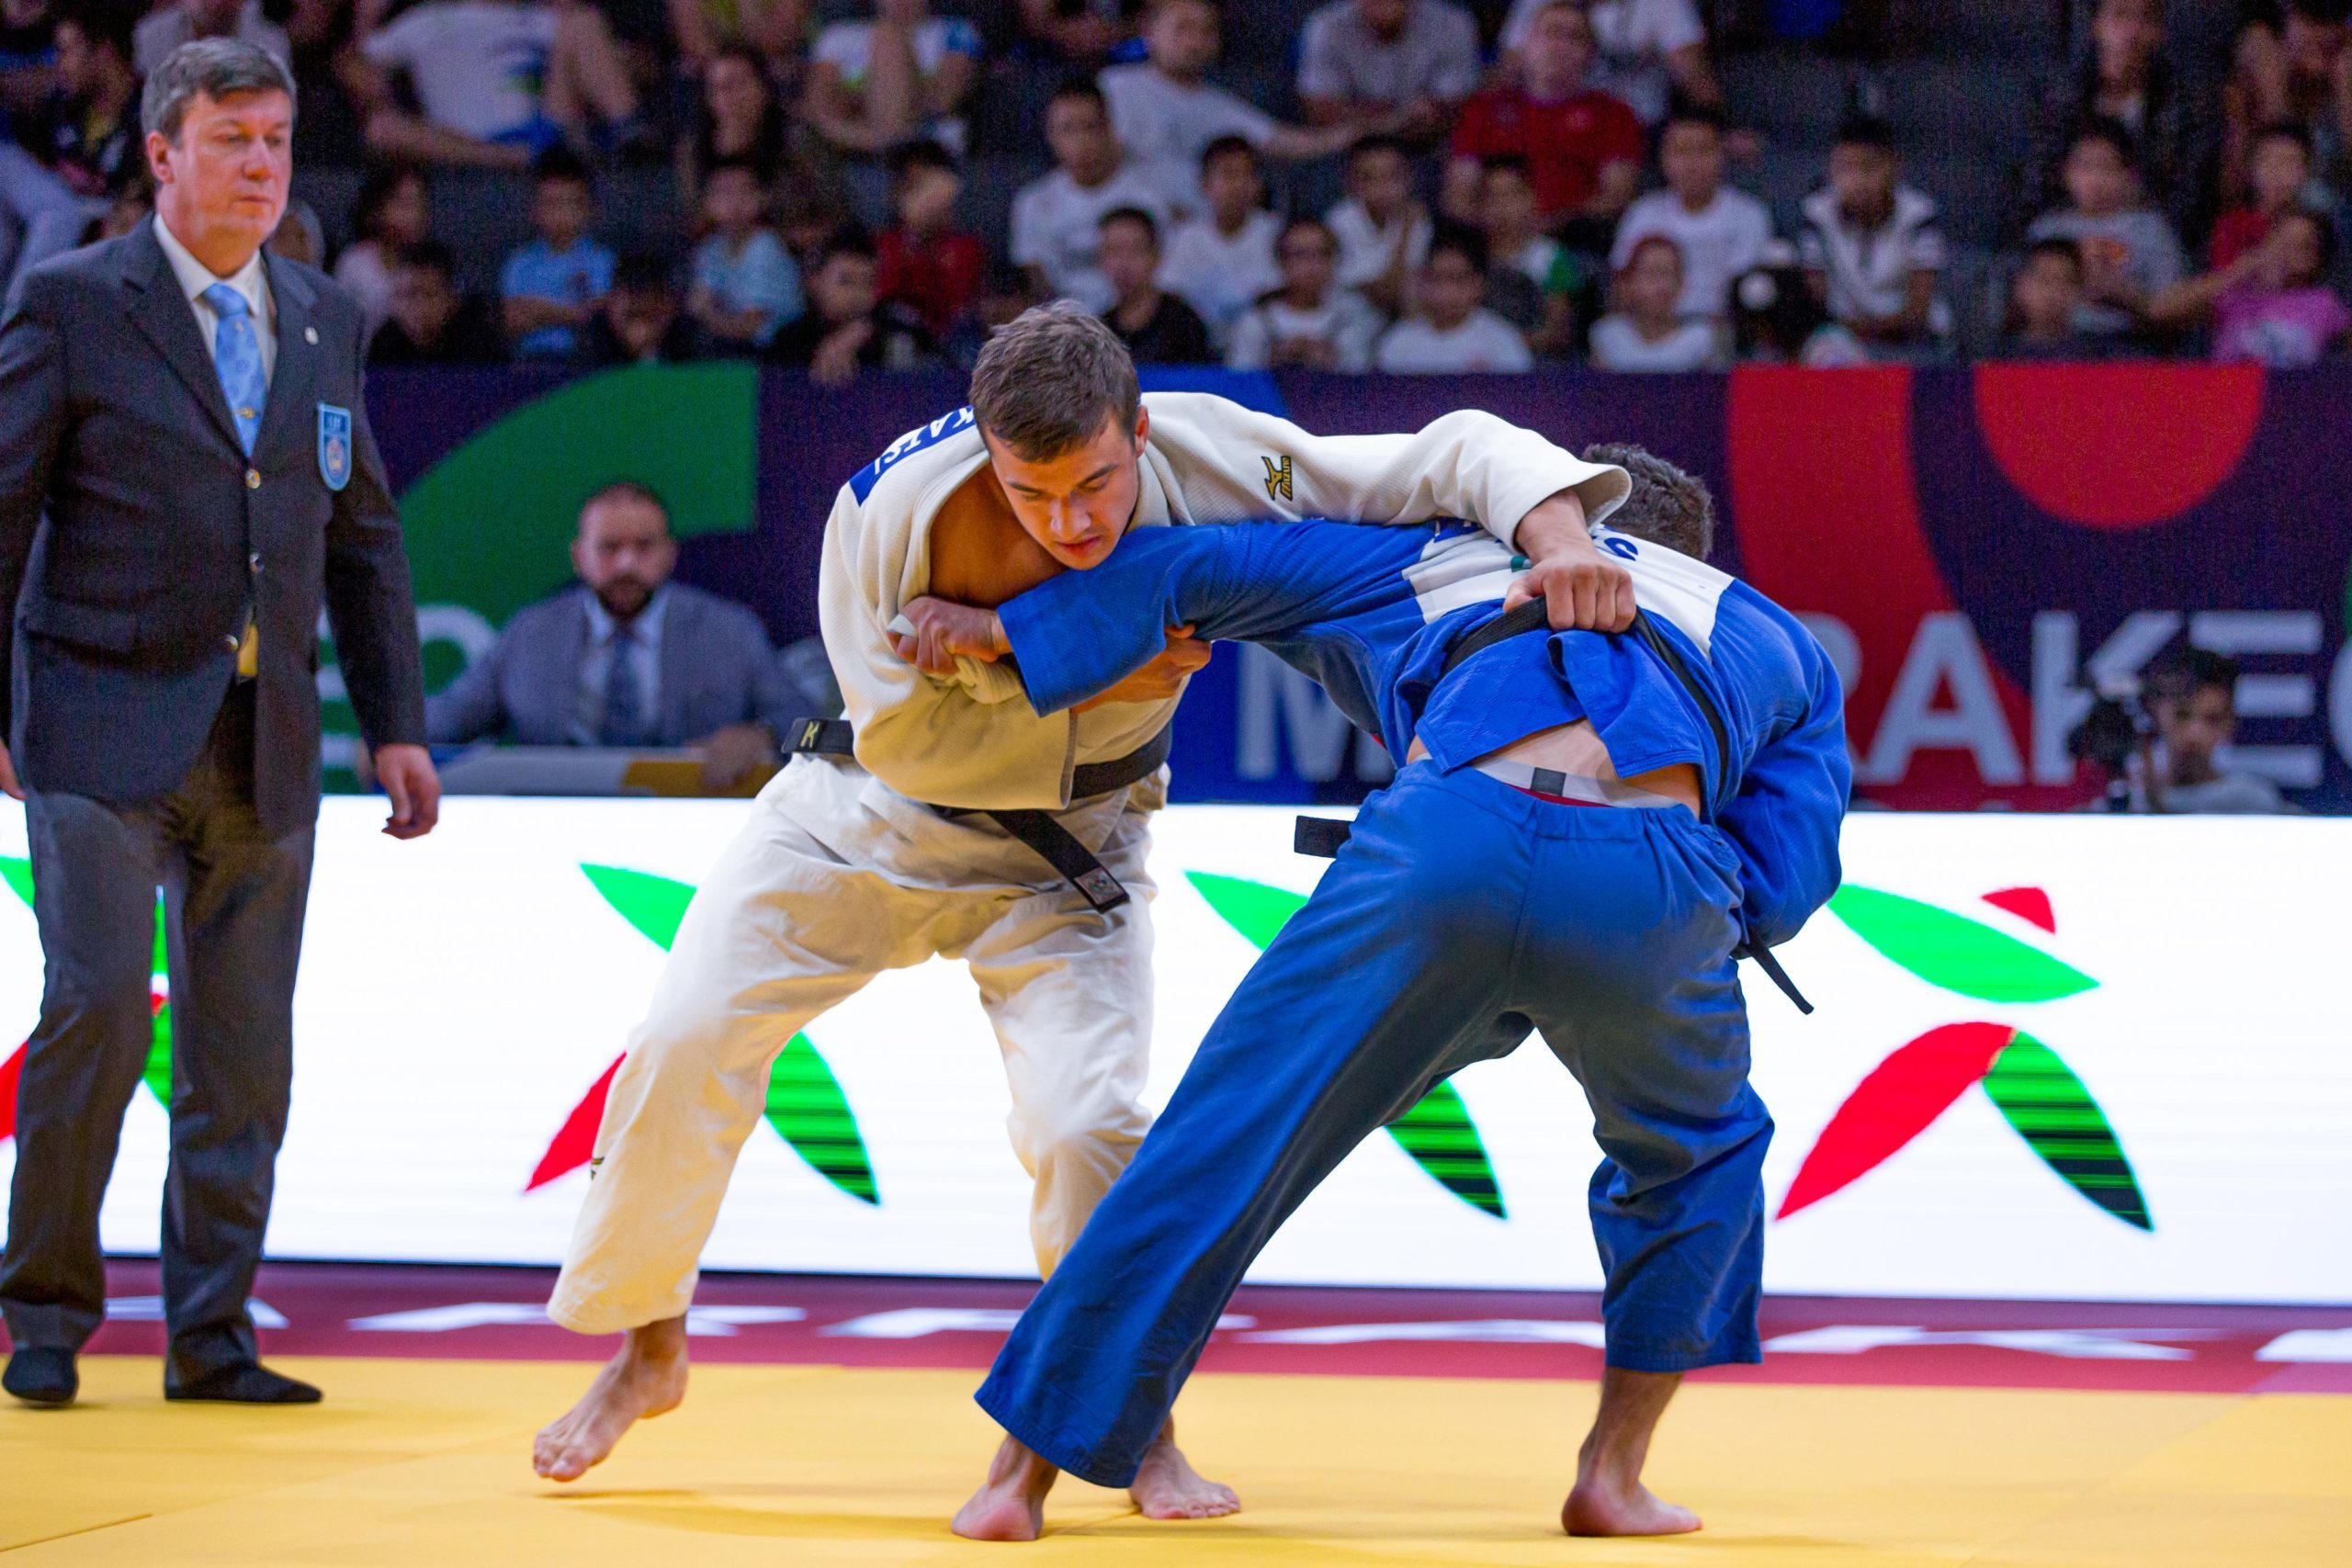 U23 EUROPEAN CHAMPIONSHIPS DAY TWO WELCOMES BACK PAST CHAMPIONS